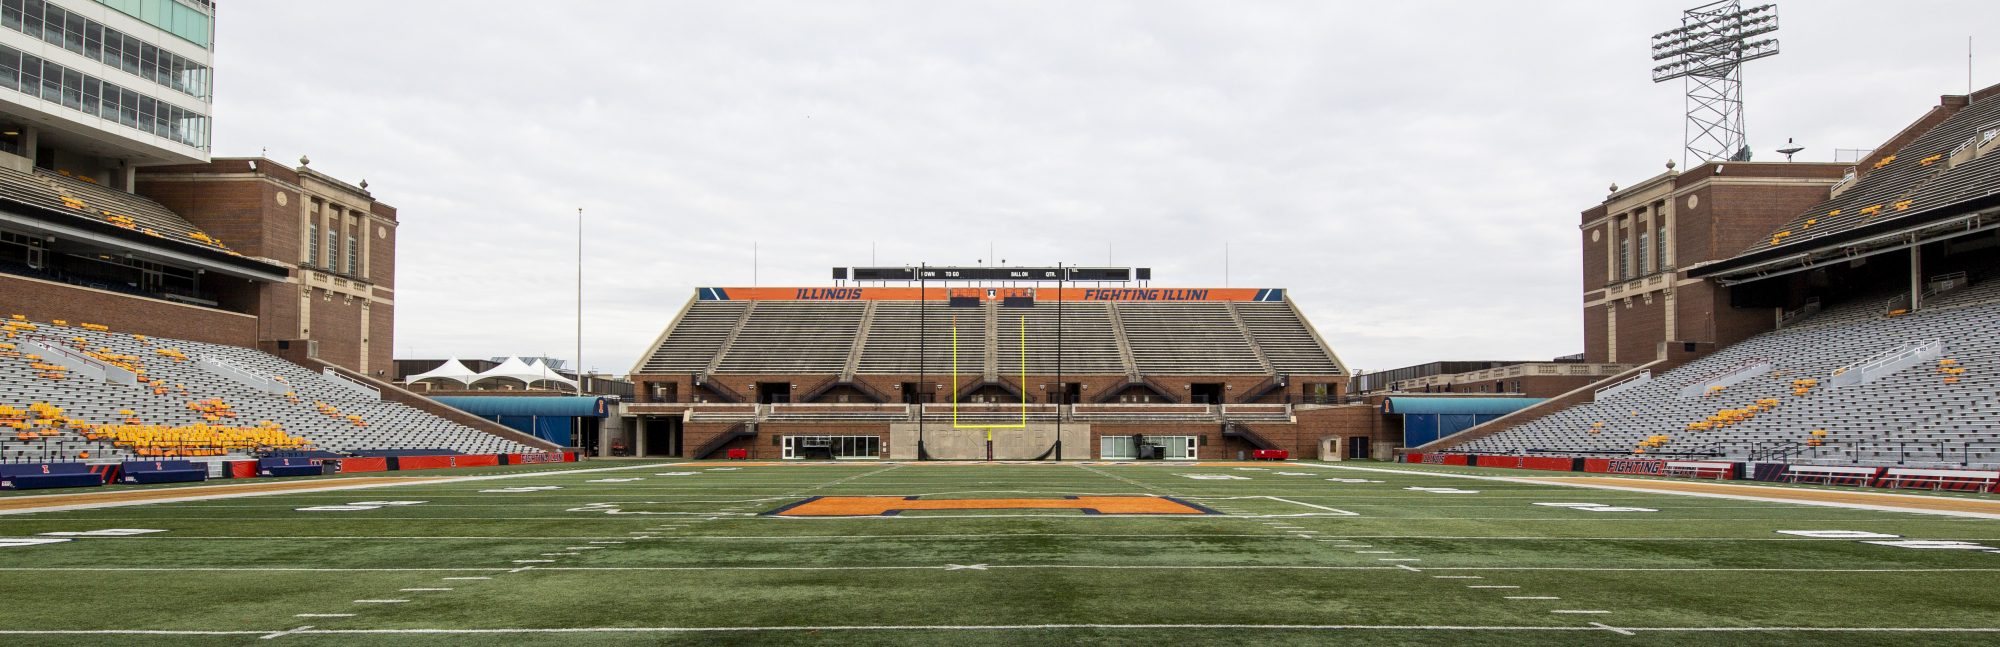 Memorial Stadium North Stands